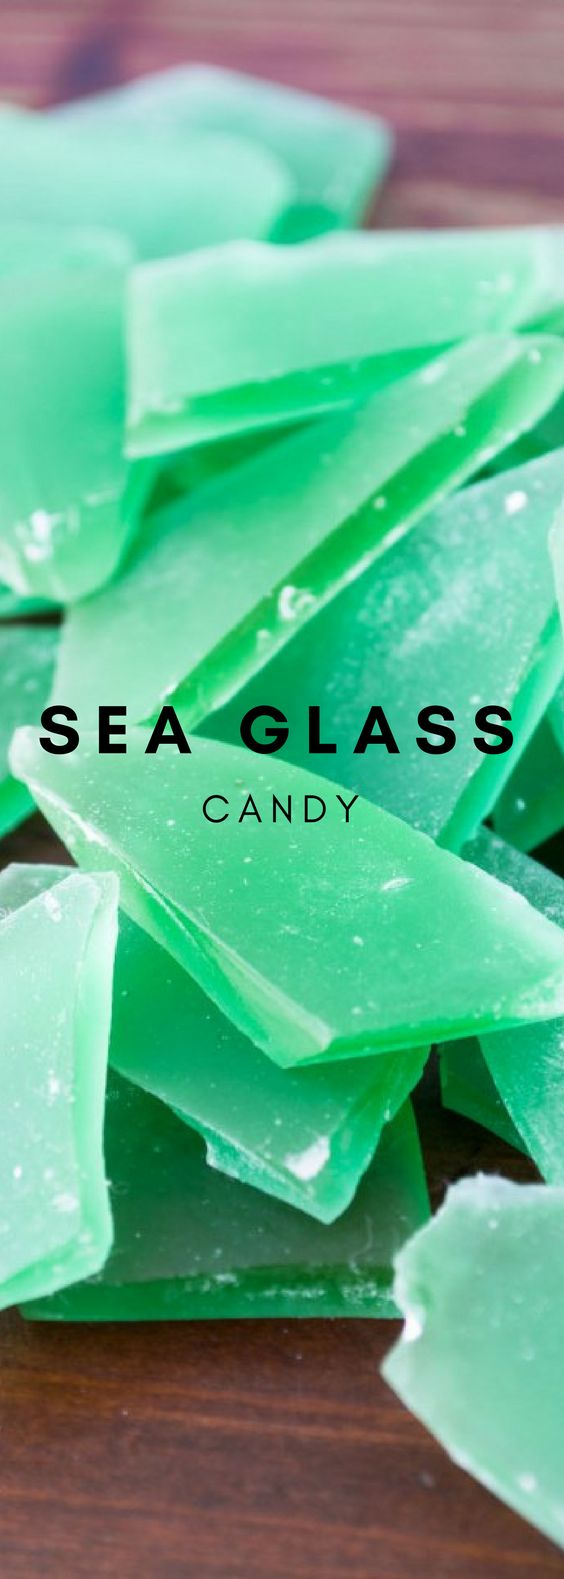 This Sea Glass Candy is one of those classic 'I saw it on Pinterest' type of deals.  It caught my eye, I made it, and it turned out so perfectly I knew I needed to share it with you.  If you're wistful about the summer ending and want to preserve a little bit of its spirit, this is the project for you!